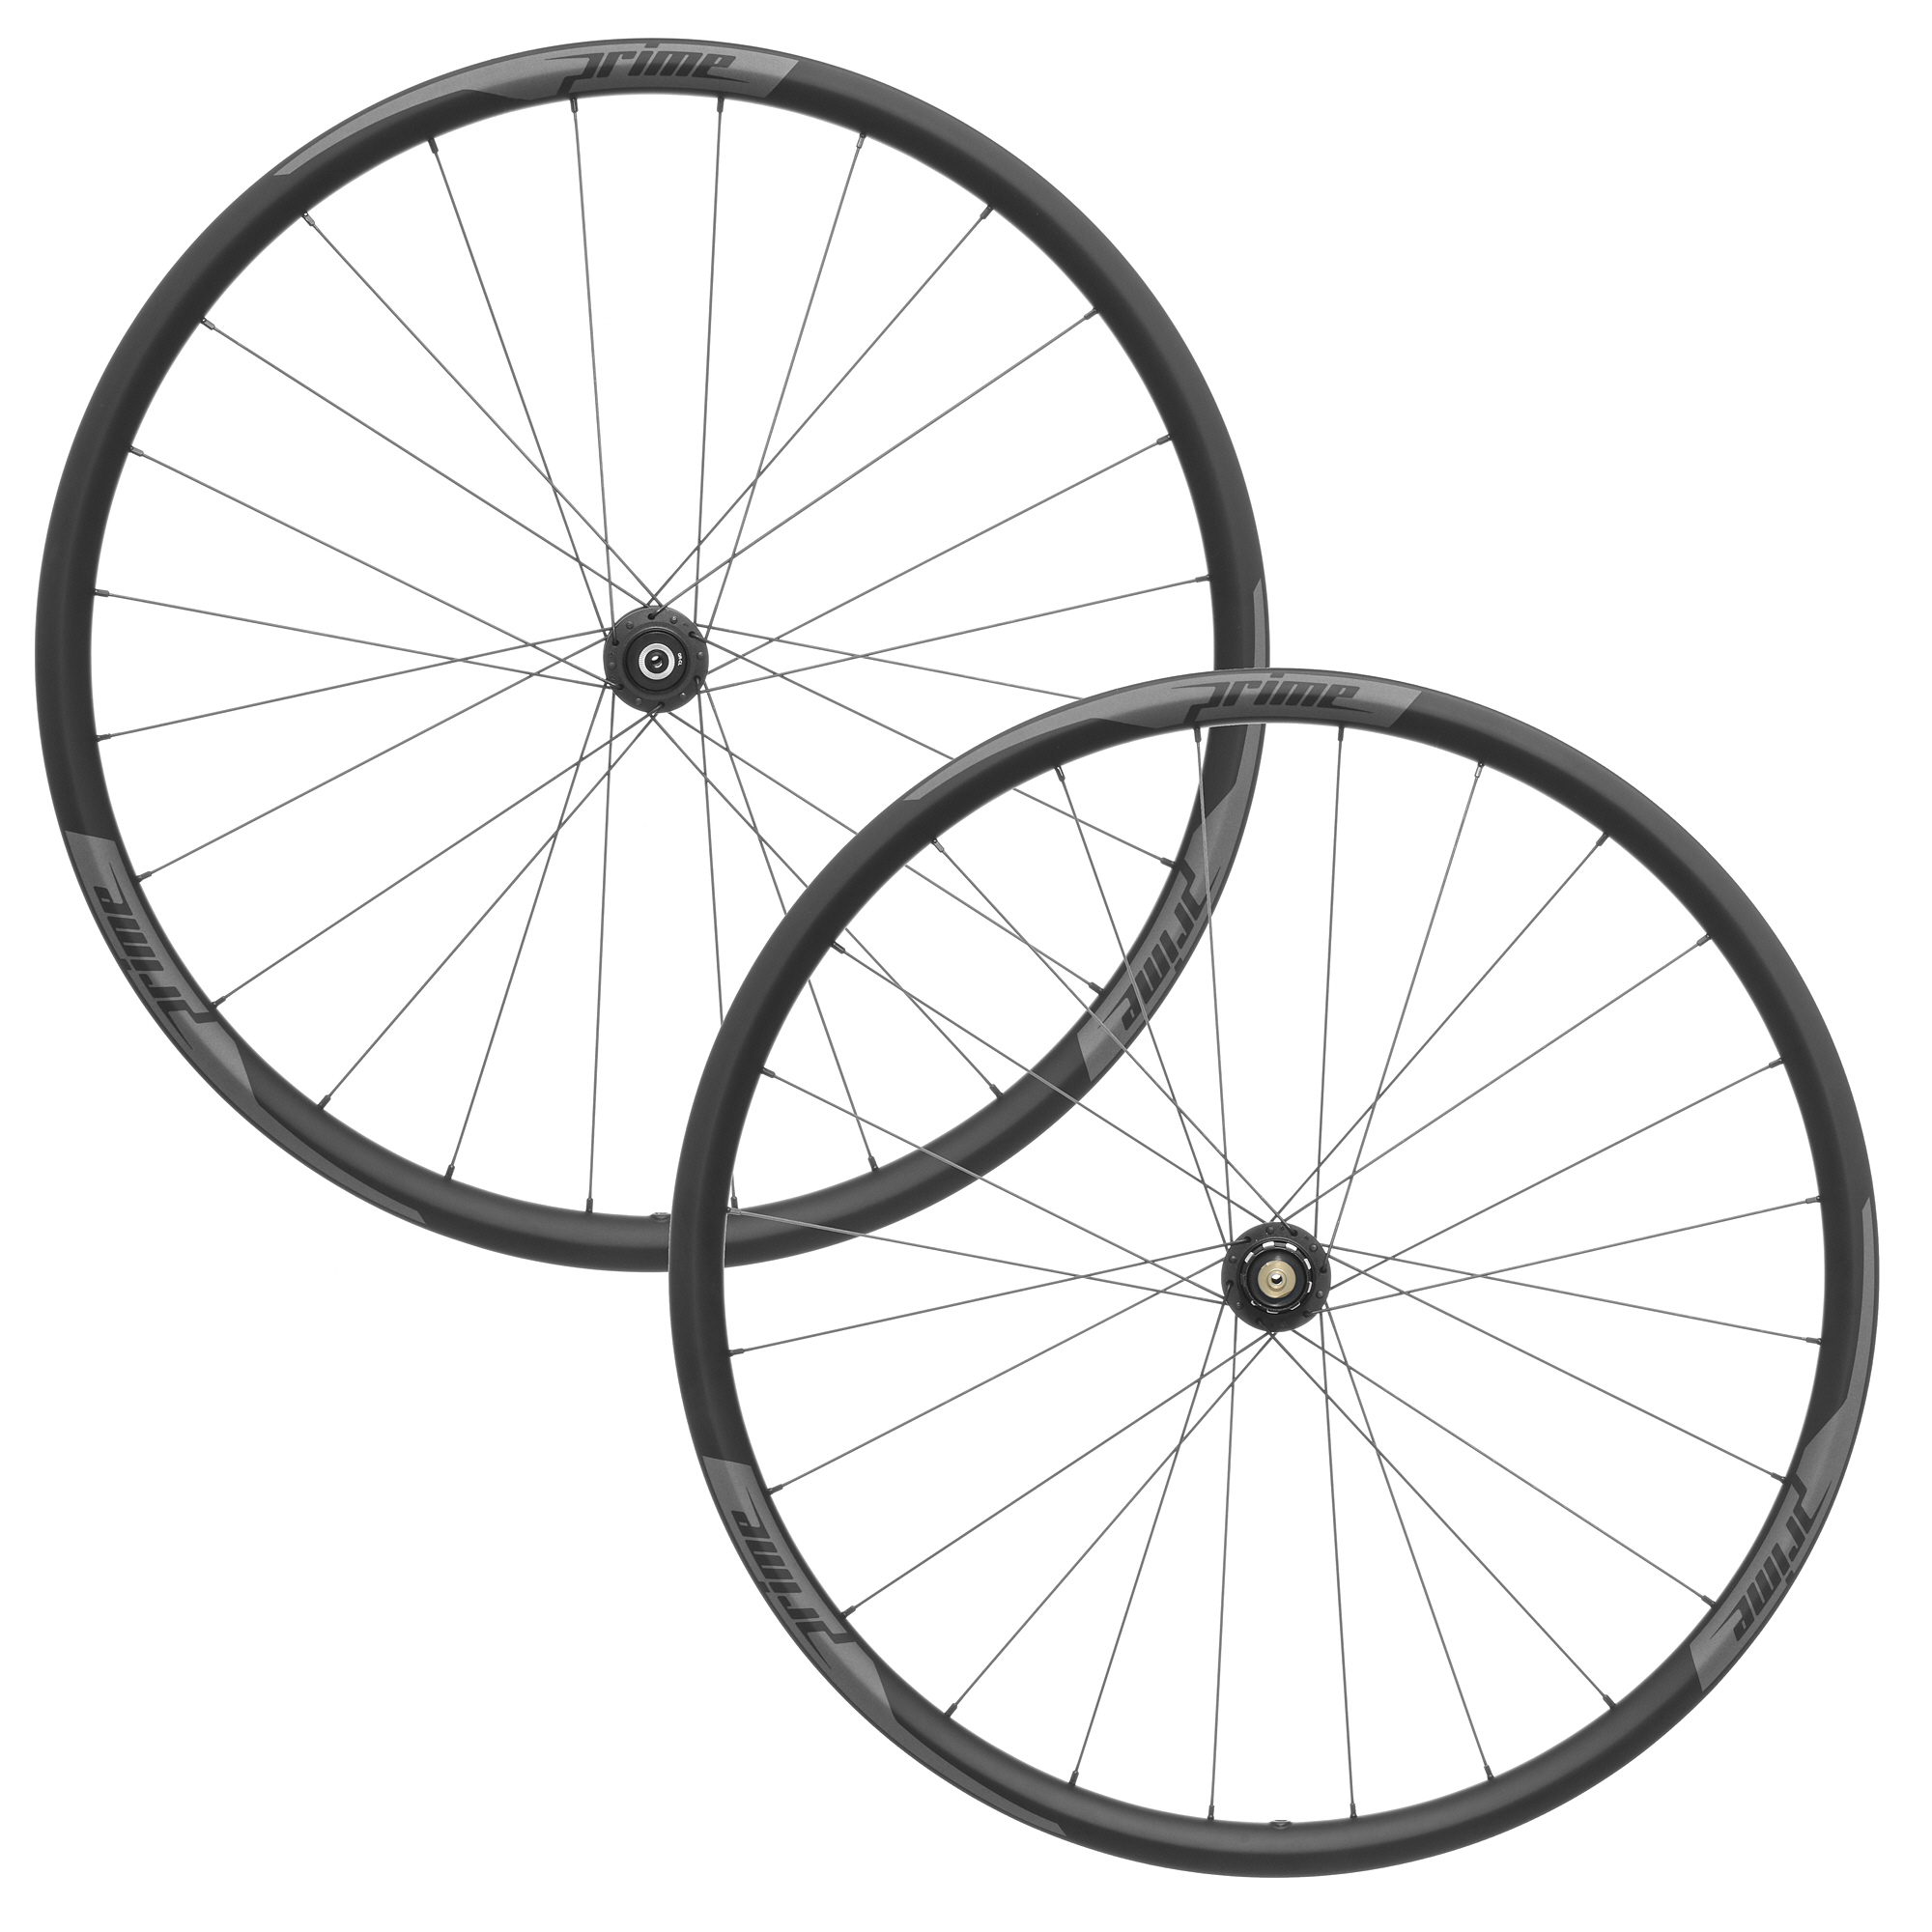 Prime RR-28 V2 Carbon Clincher Disc Wheelset | Wheelset